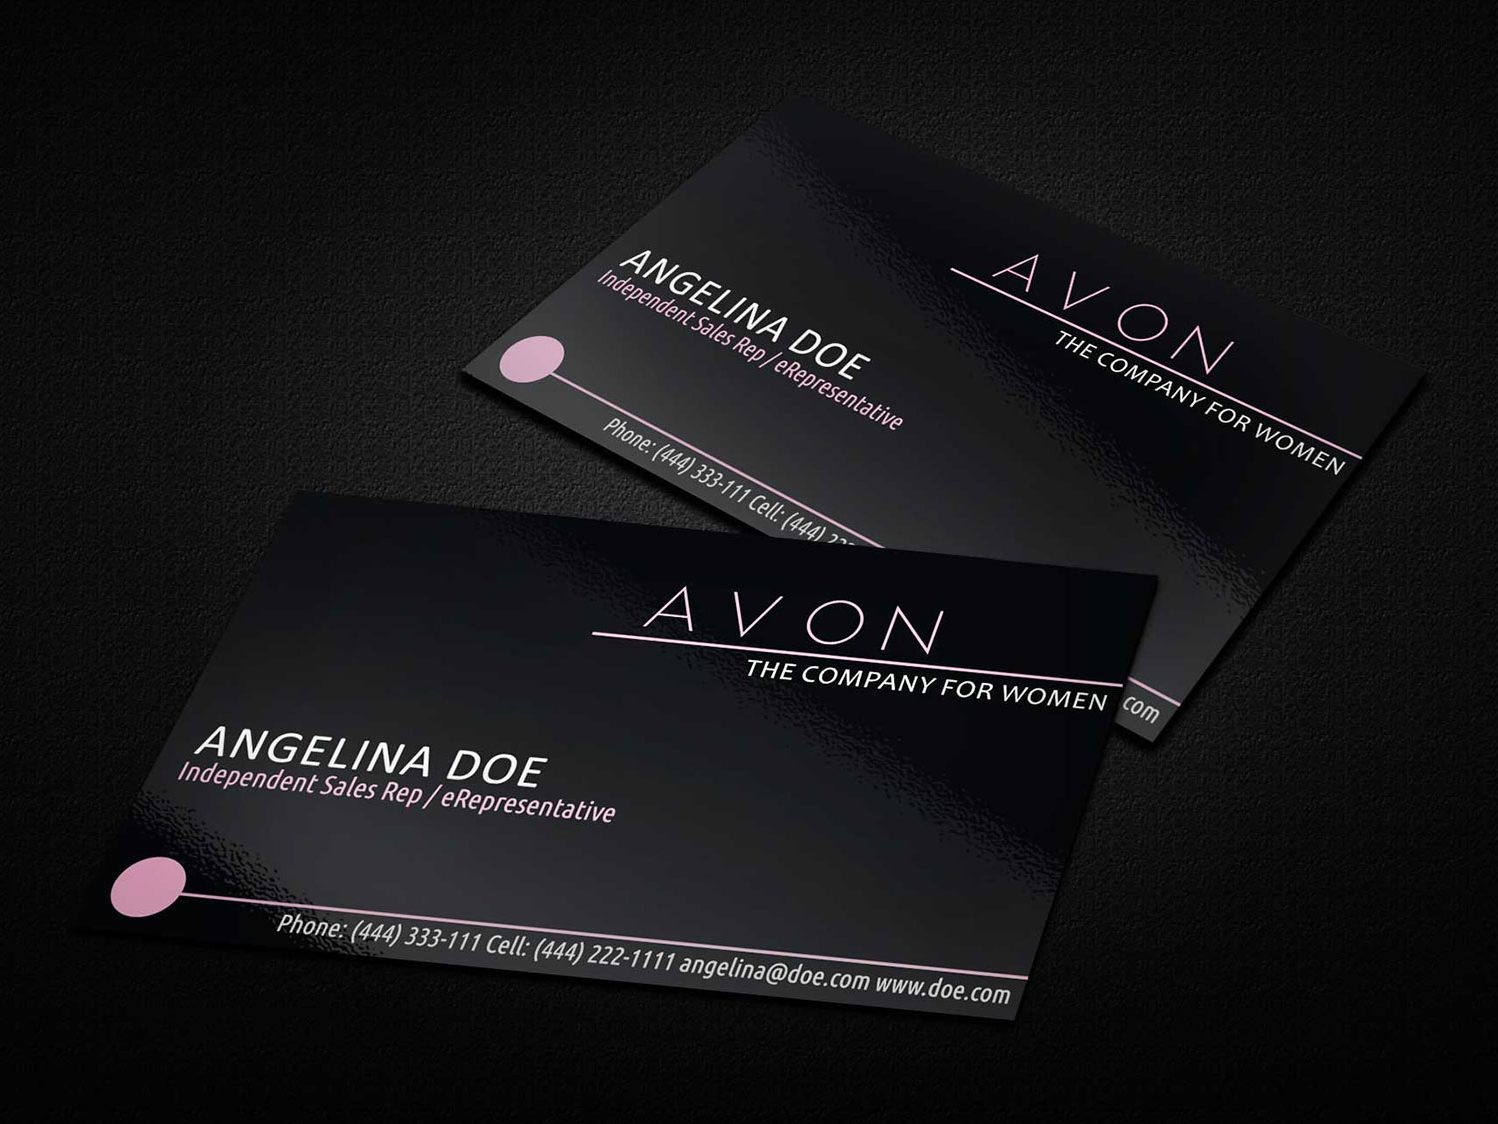 Avon Business Card Template